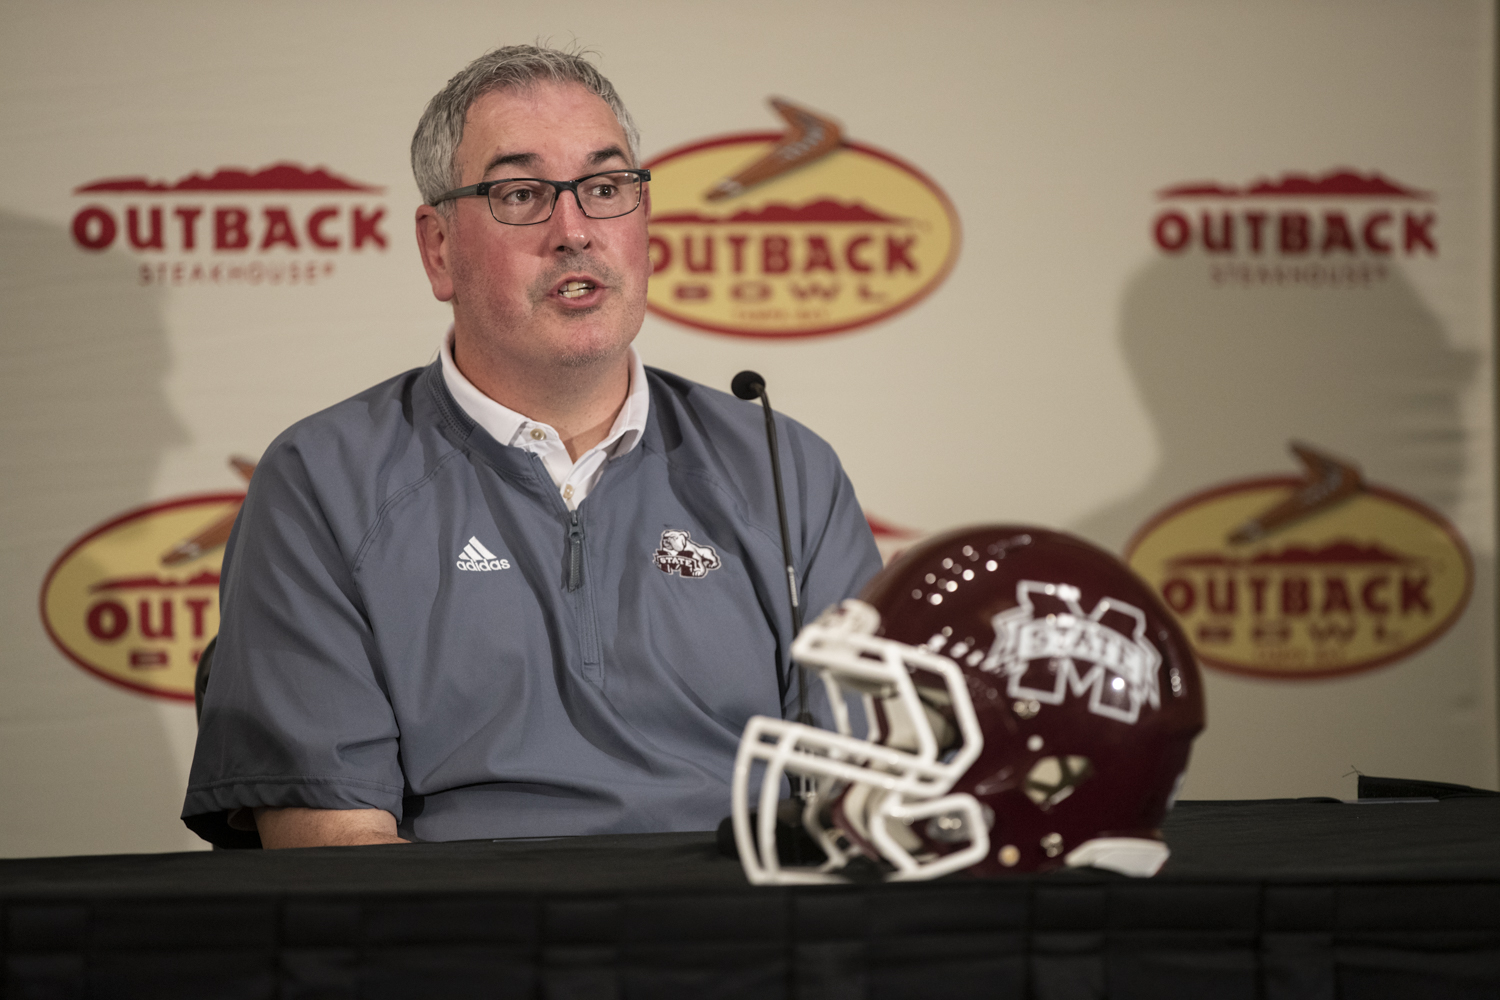 Mississippi State Head Coach Joe Moorhead answers a question during a press conference  in Tampa, Florida on Saturday, December 29, 2018.